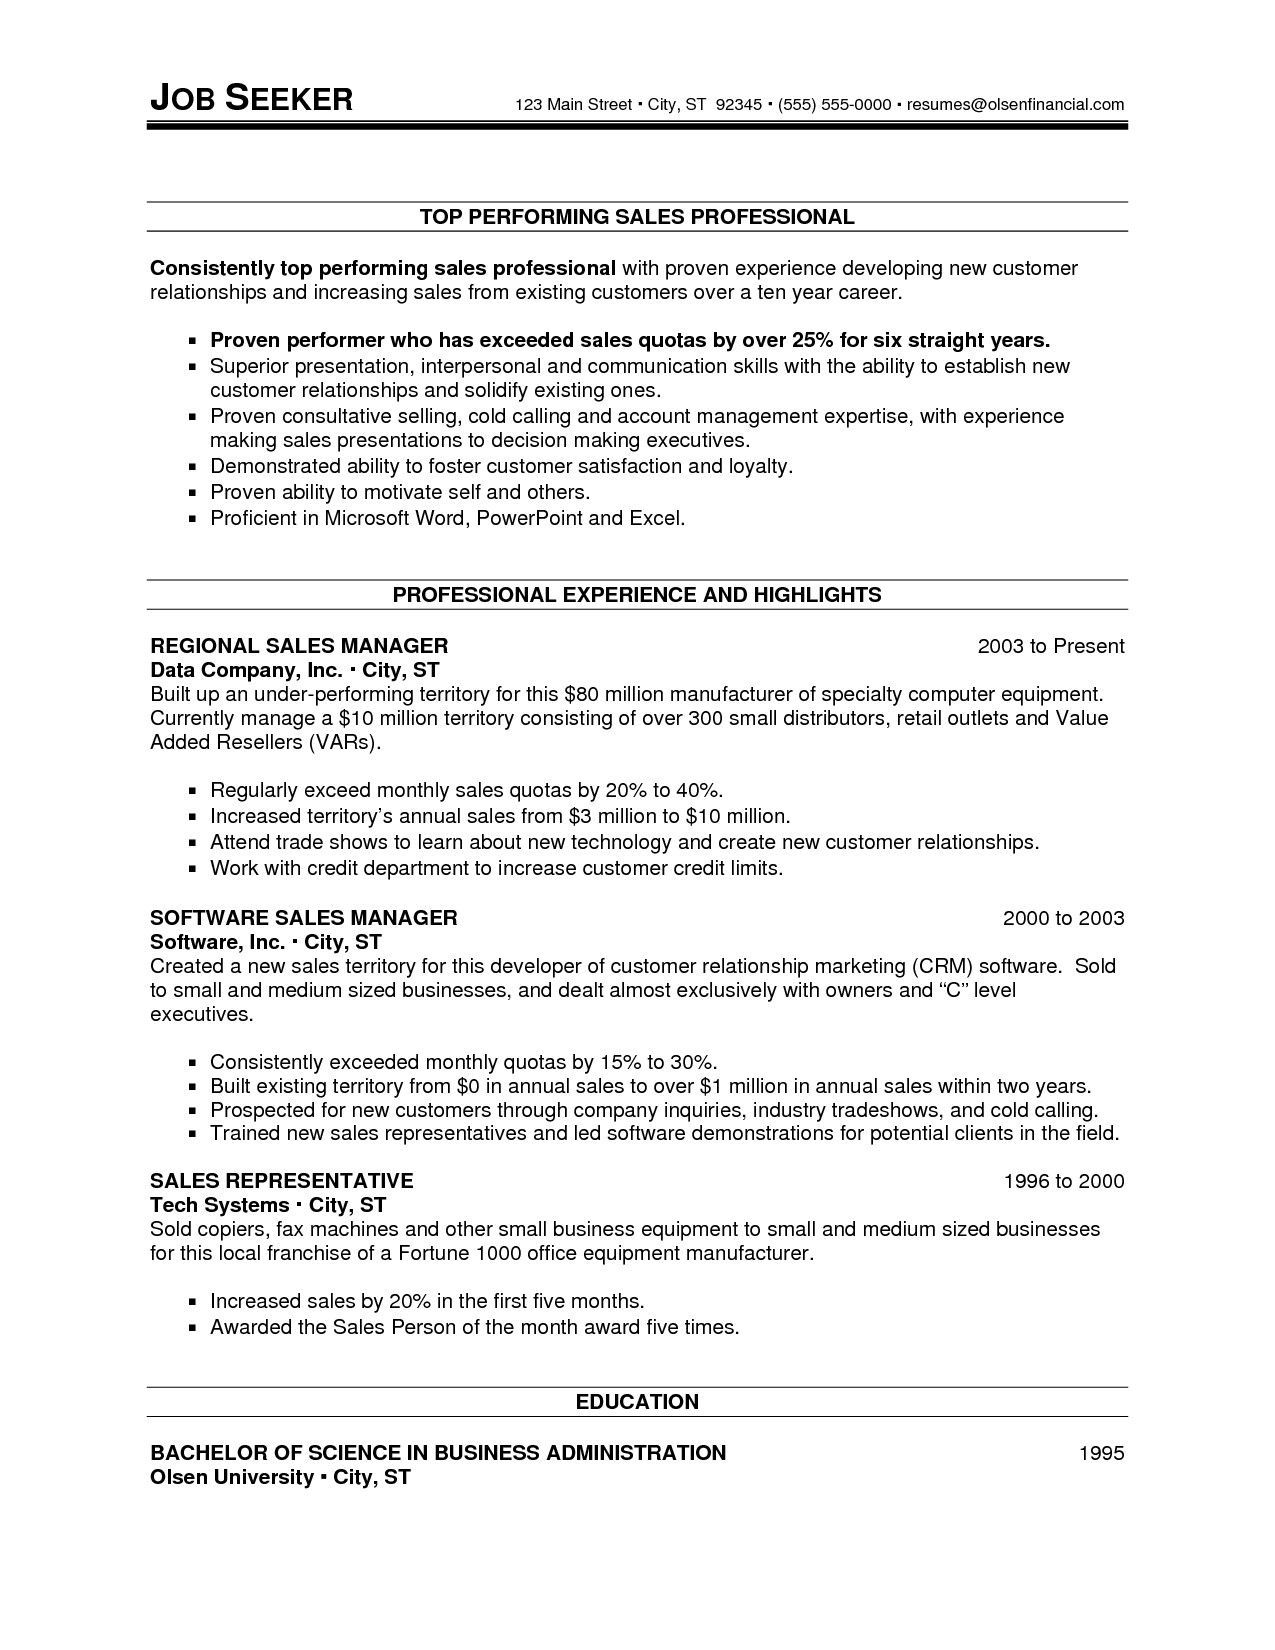 Resume Templates For 30 Years Experience Resume Templates Job Resume Examples Job Resume Samples